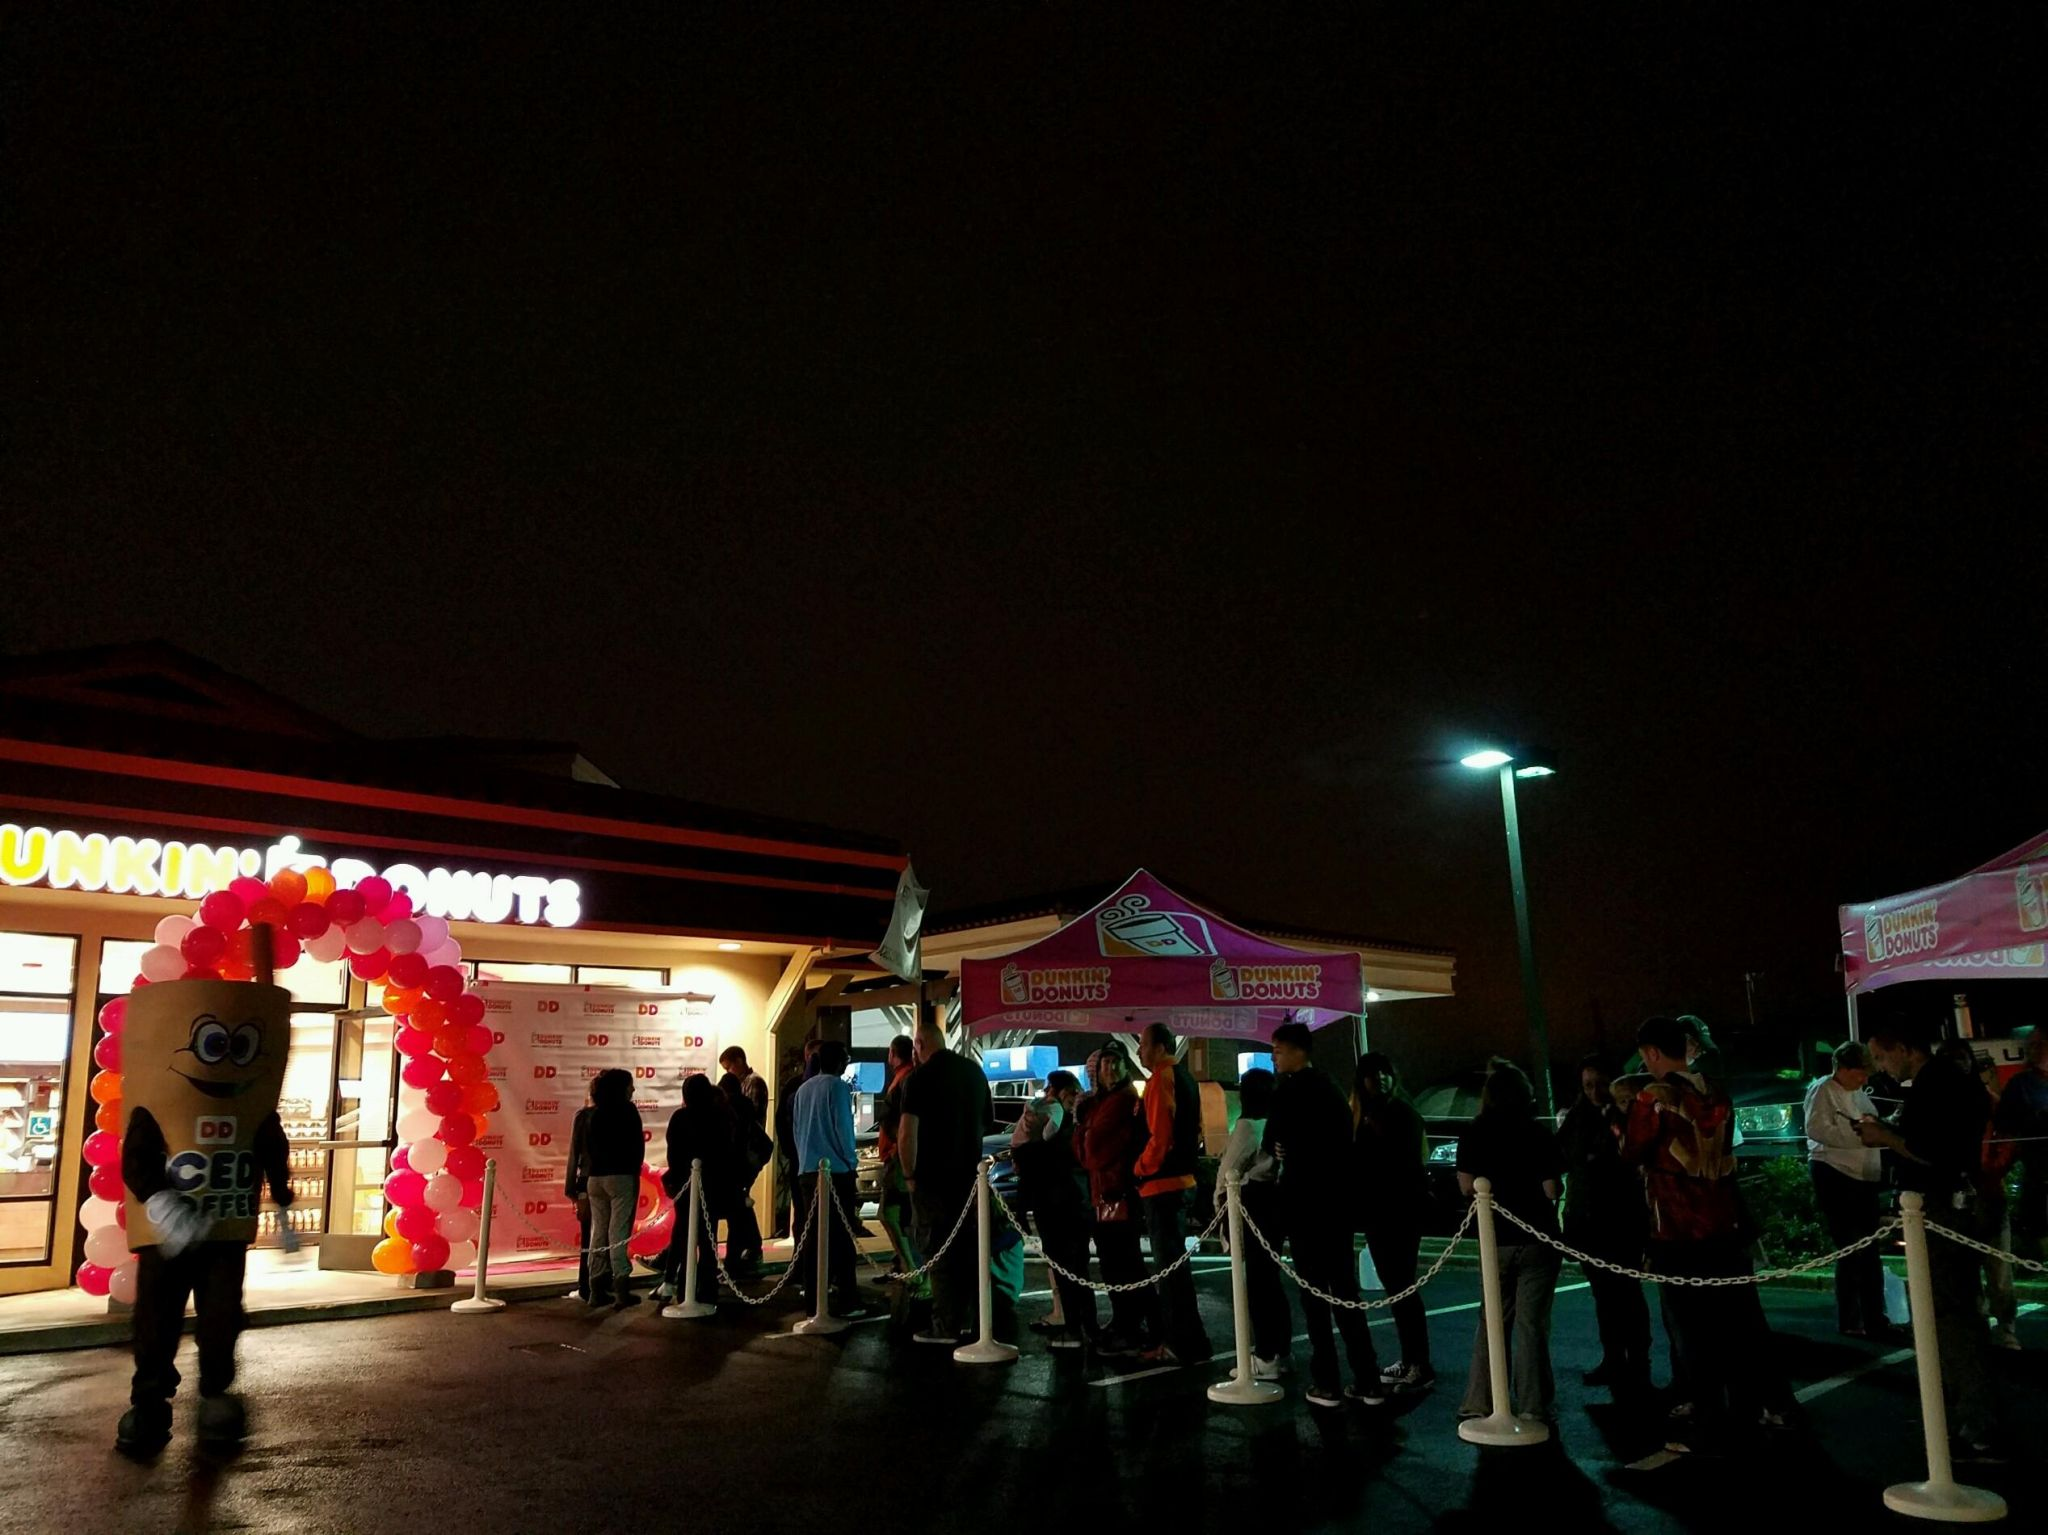 Massive line forms for opening of Dunkin Donuts in Half Moon Bay ...